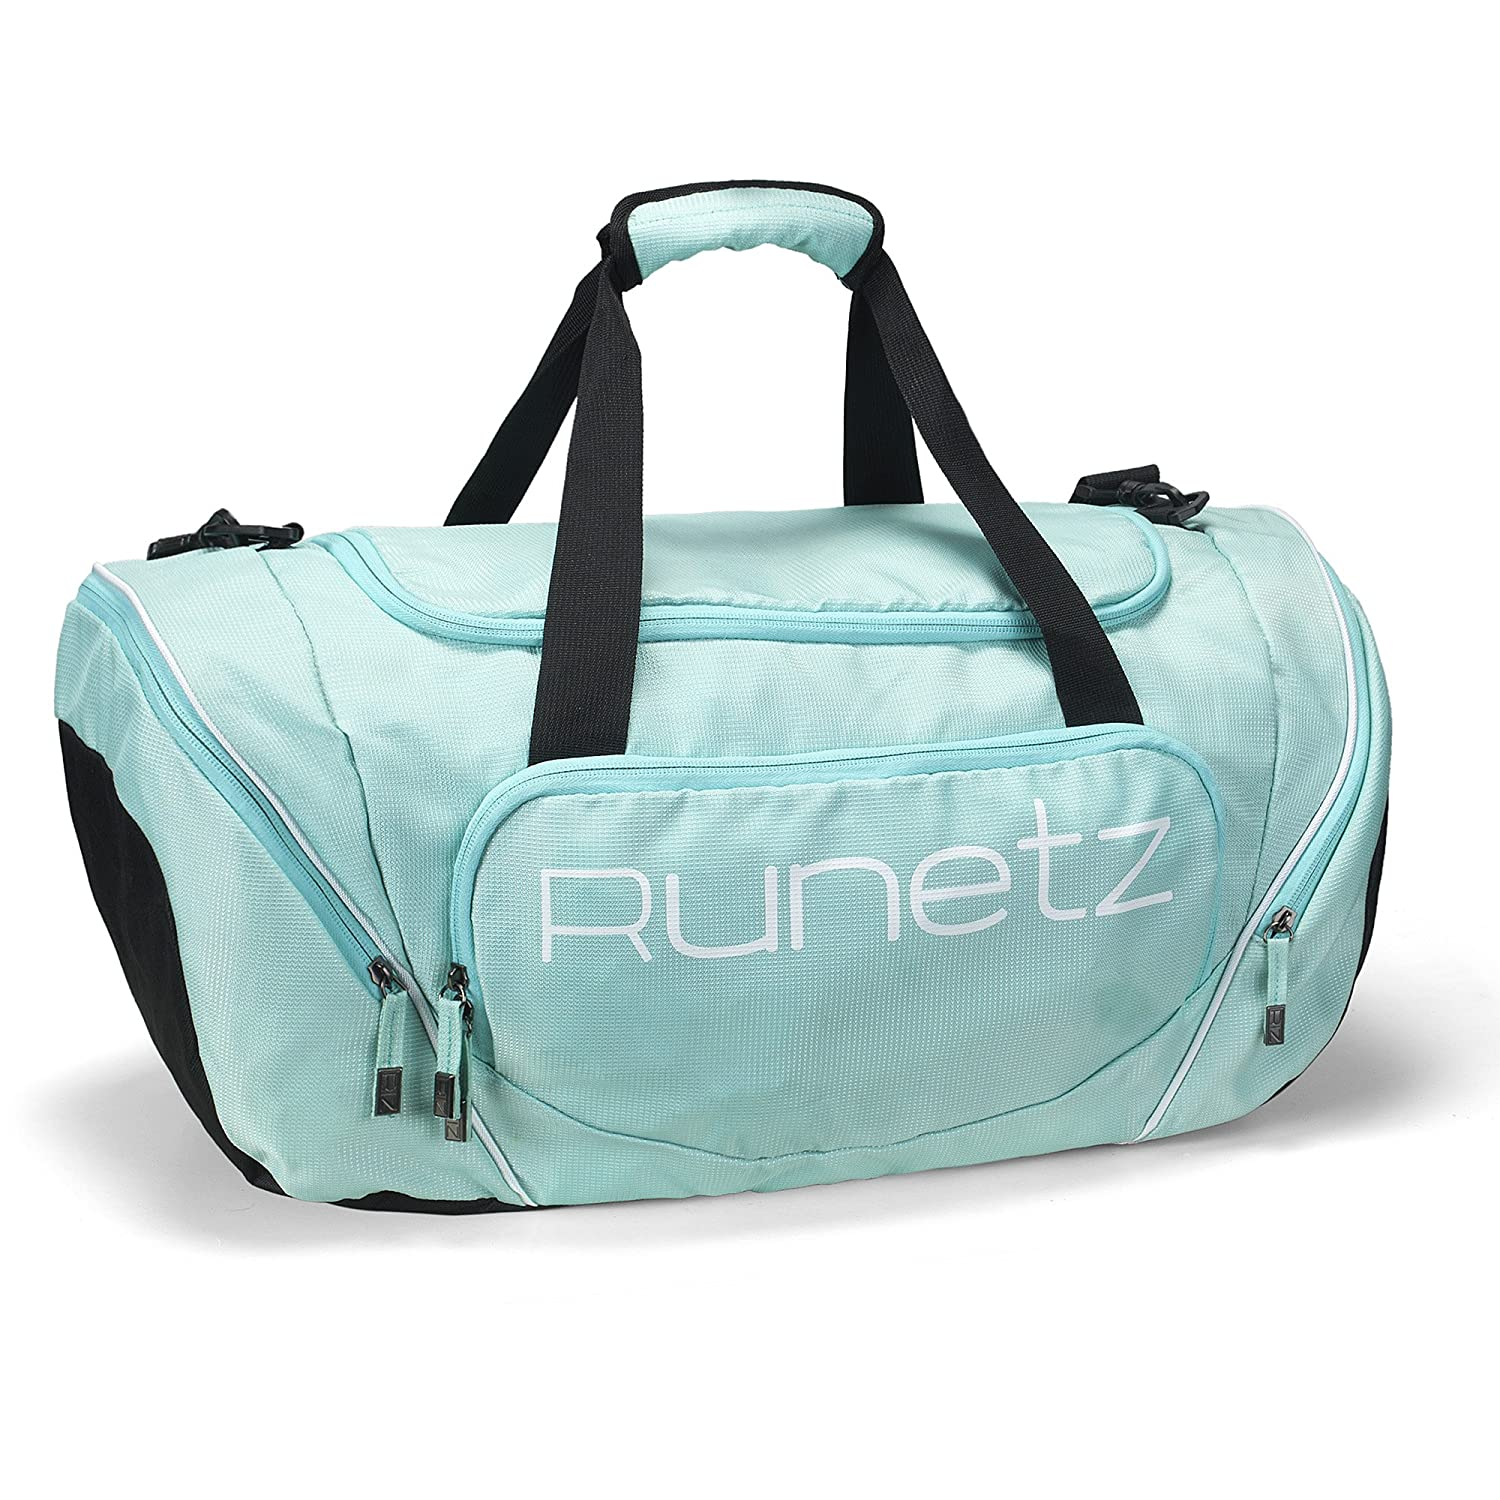 68c1a3874754 Amazon.com  Runetz - Gym Bag for Women and Men - Ideal Workout Overnight  Weekend Bag - Sport Duffle Bag - Large Size